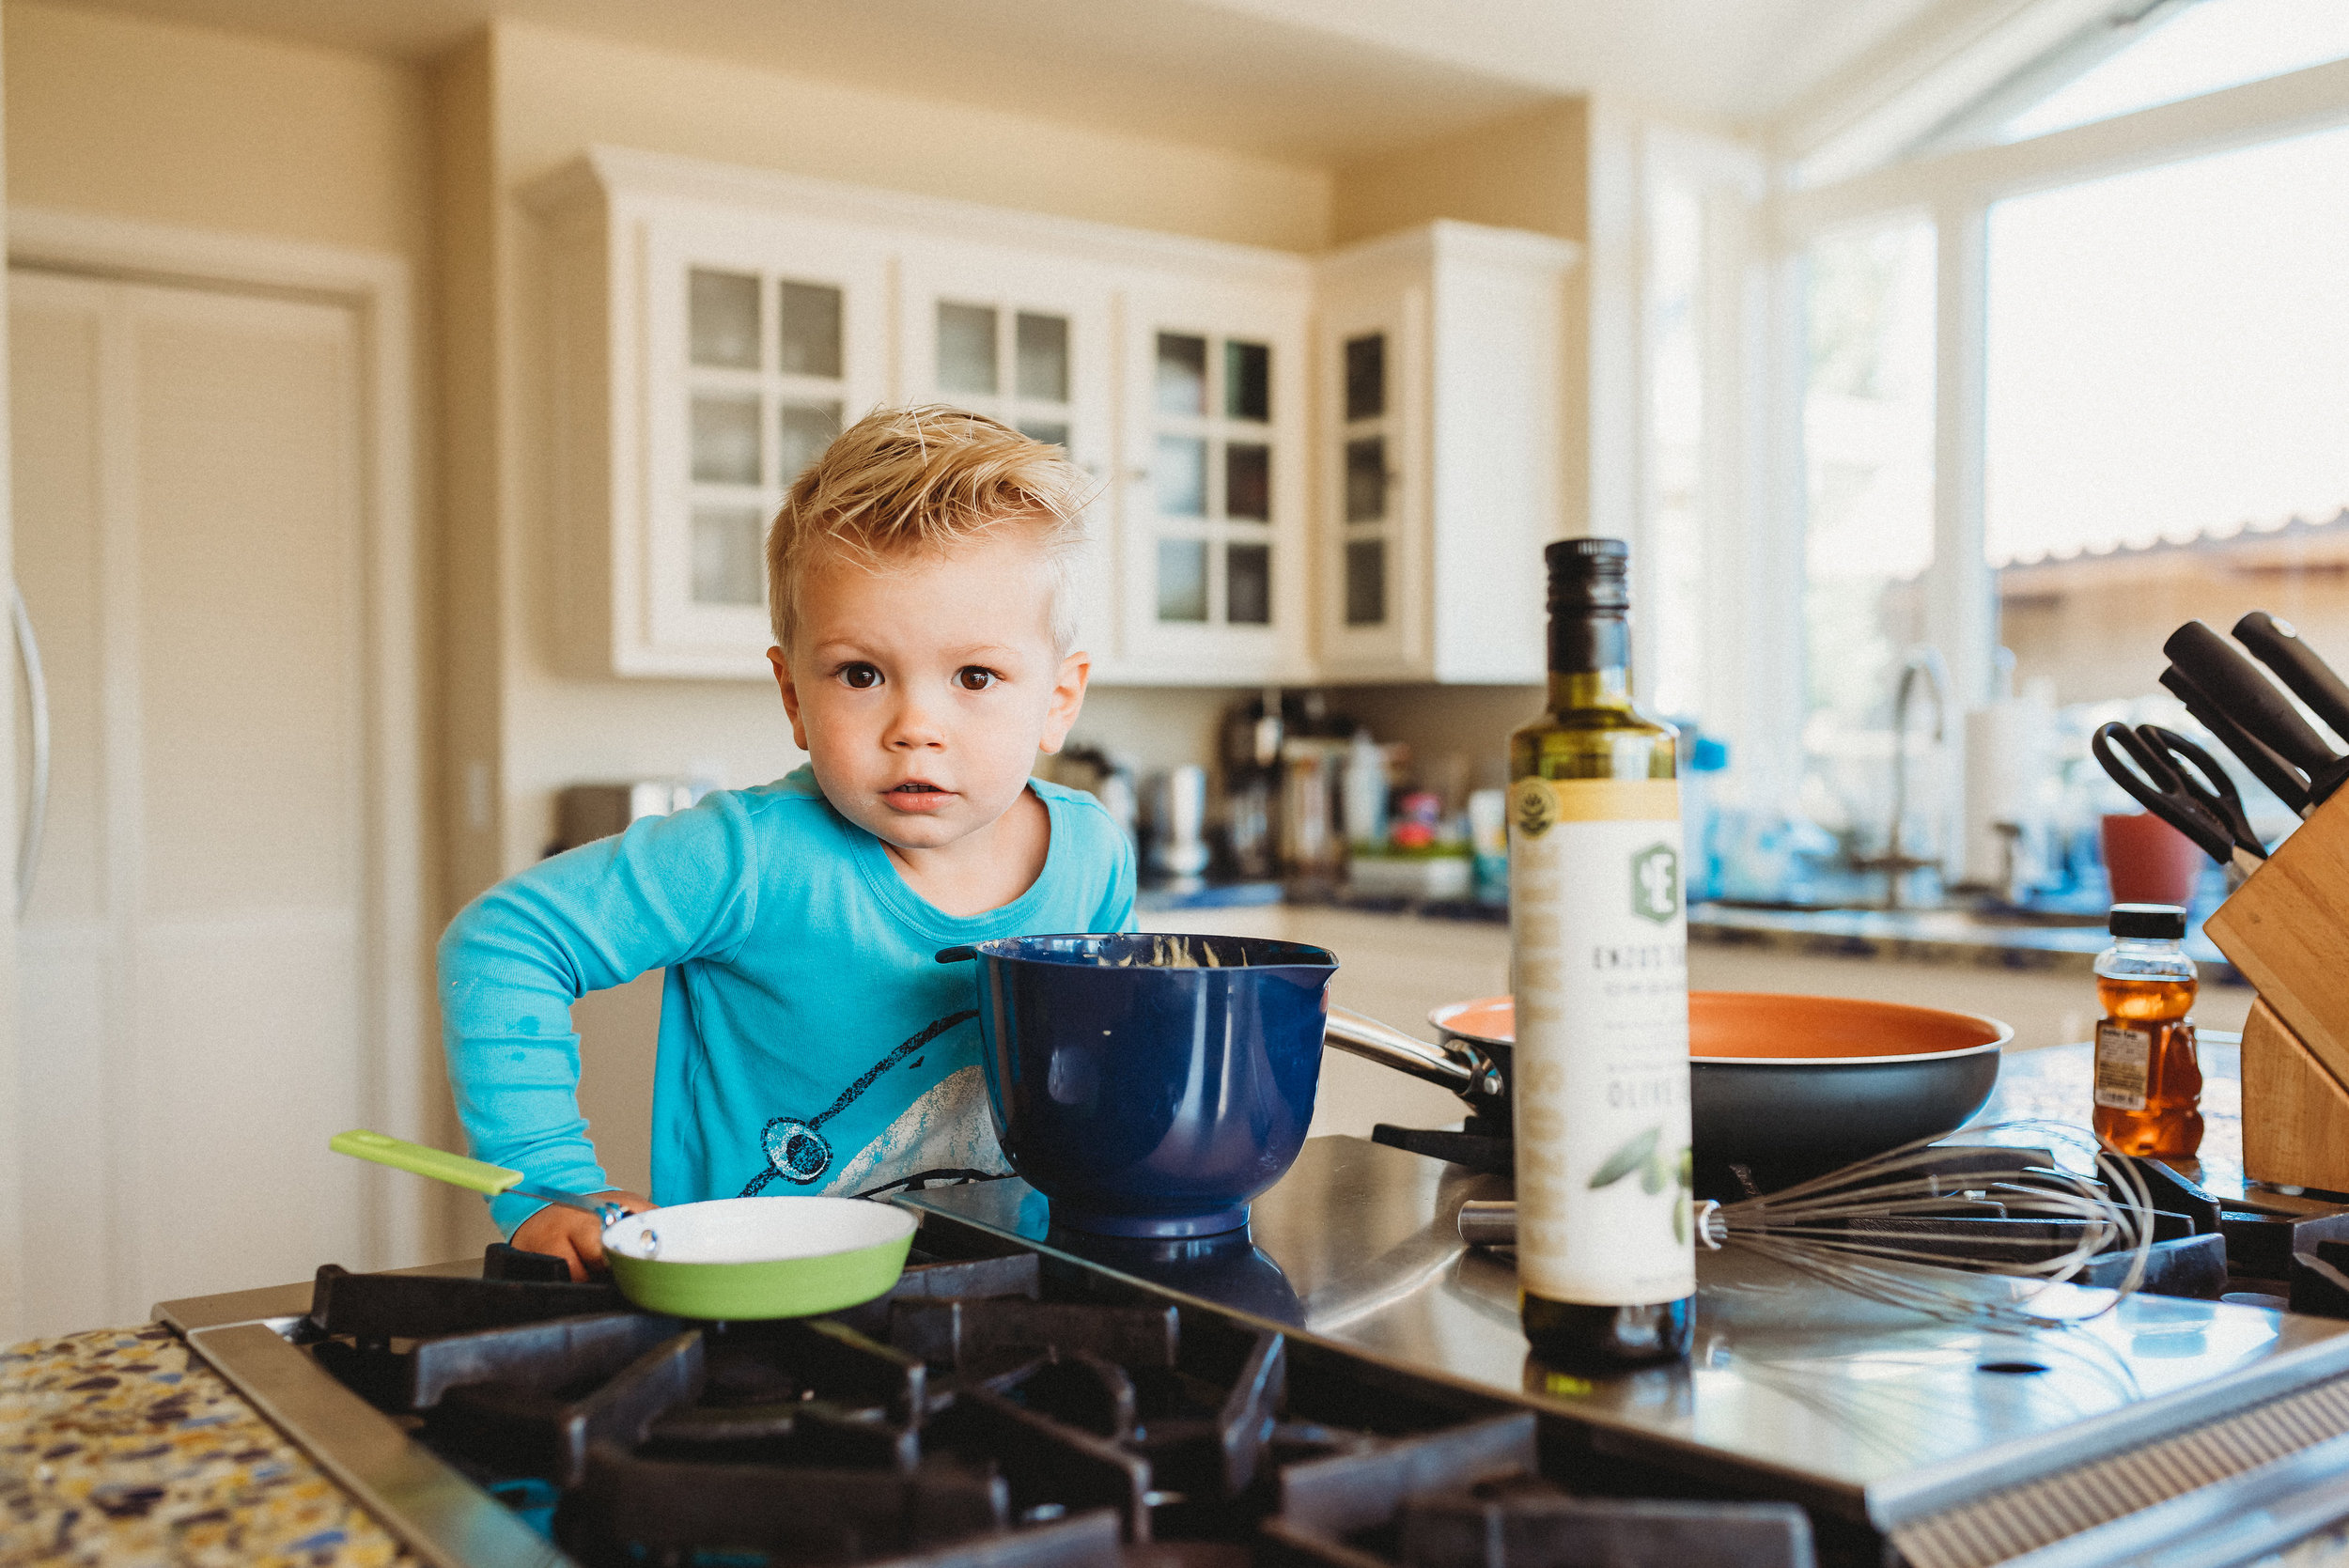 family pancakes morning routine mom of two toddlers pj mornings family time quality time2.jpg